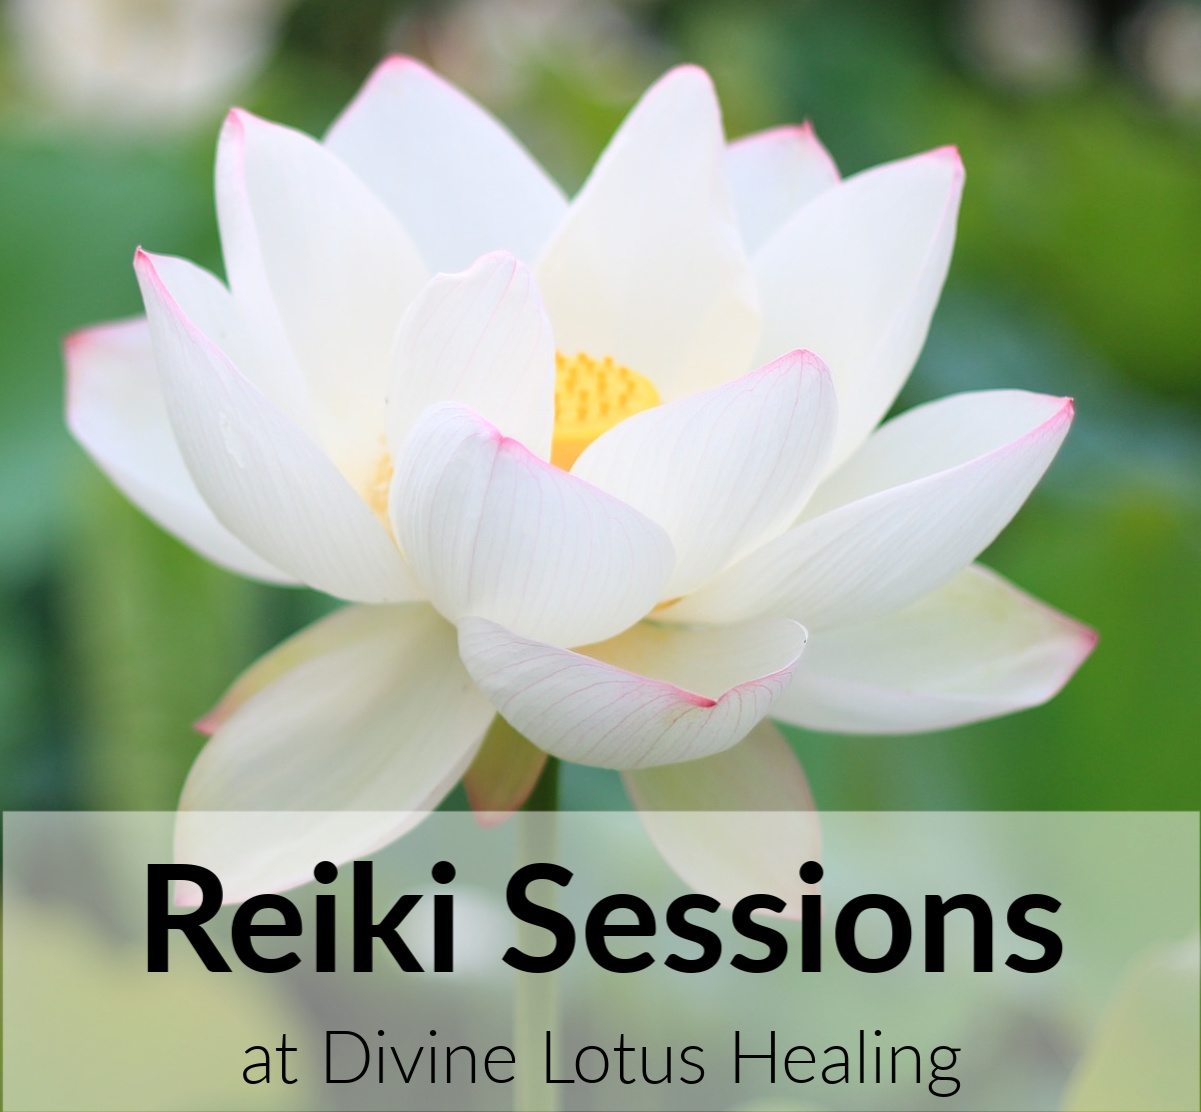 Reiki Sessions at Divine Lotus Healing